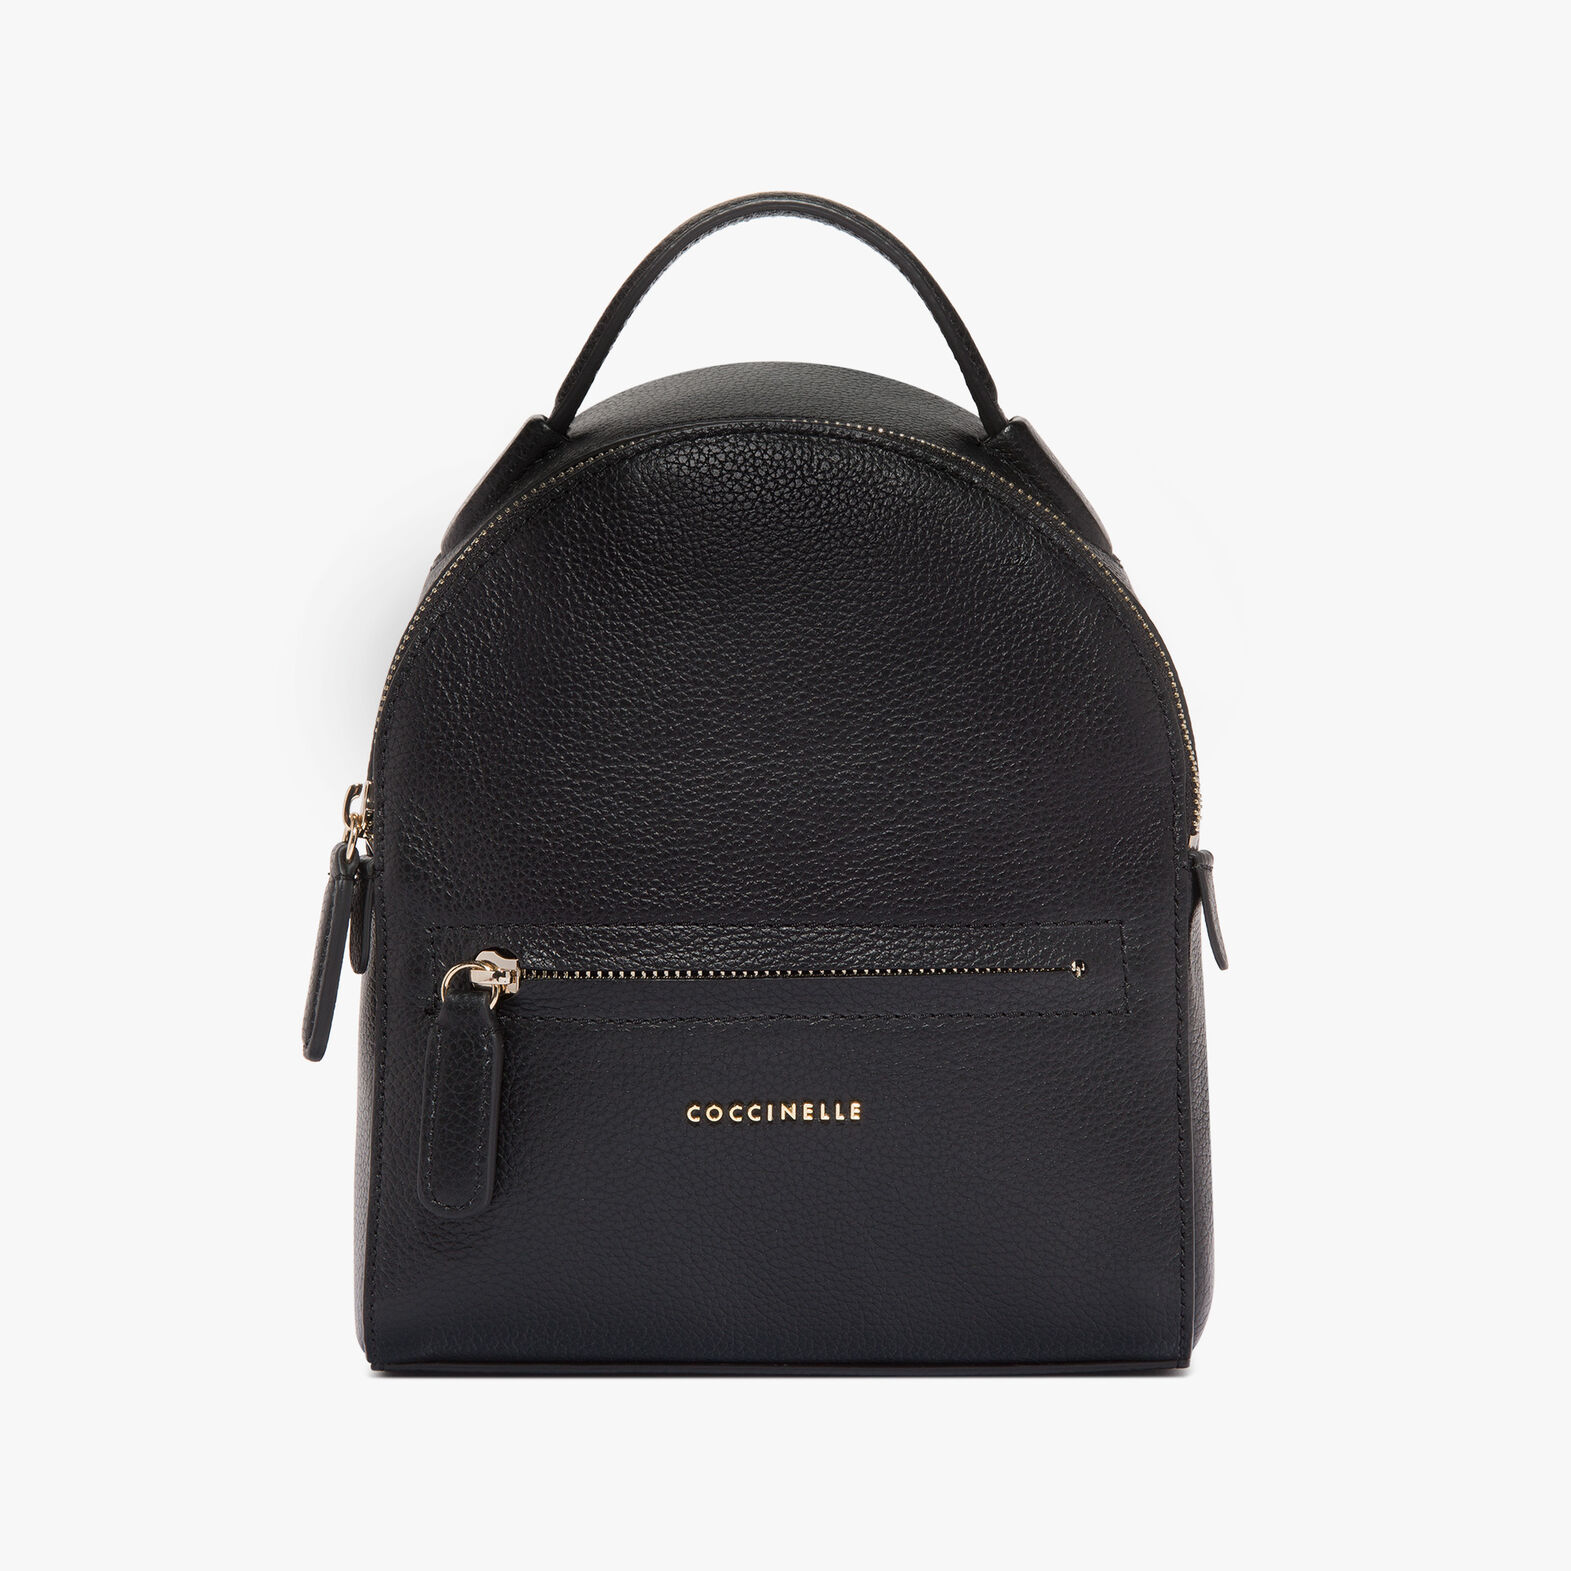 Clementine leather mini backpack